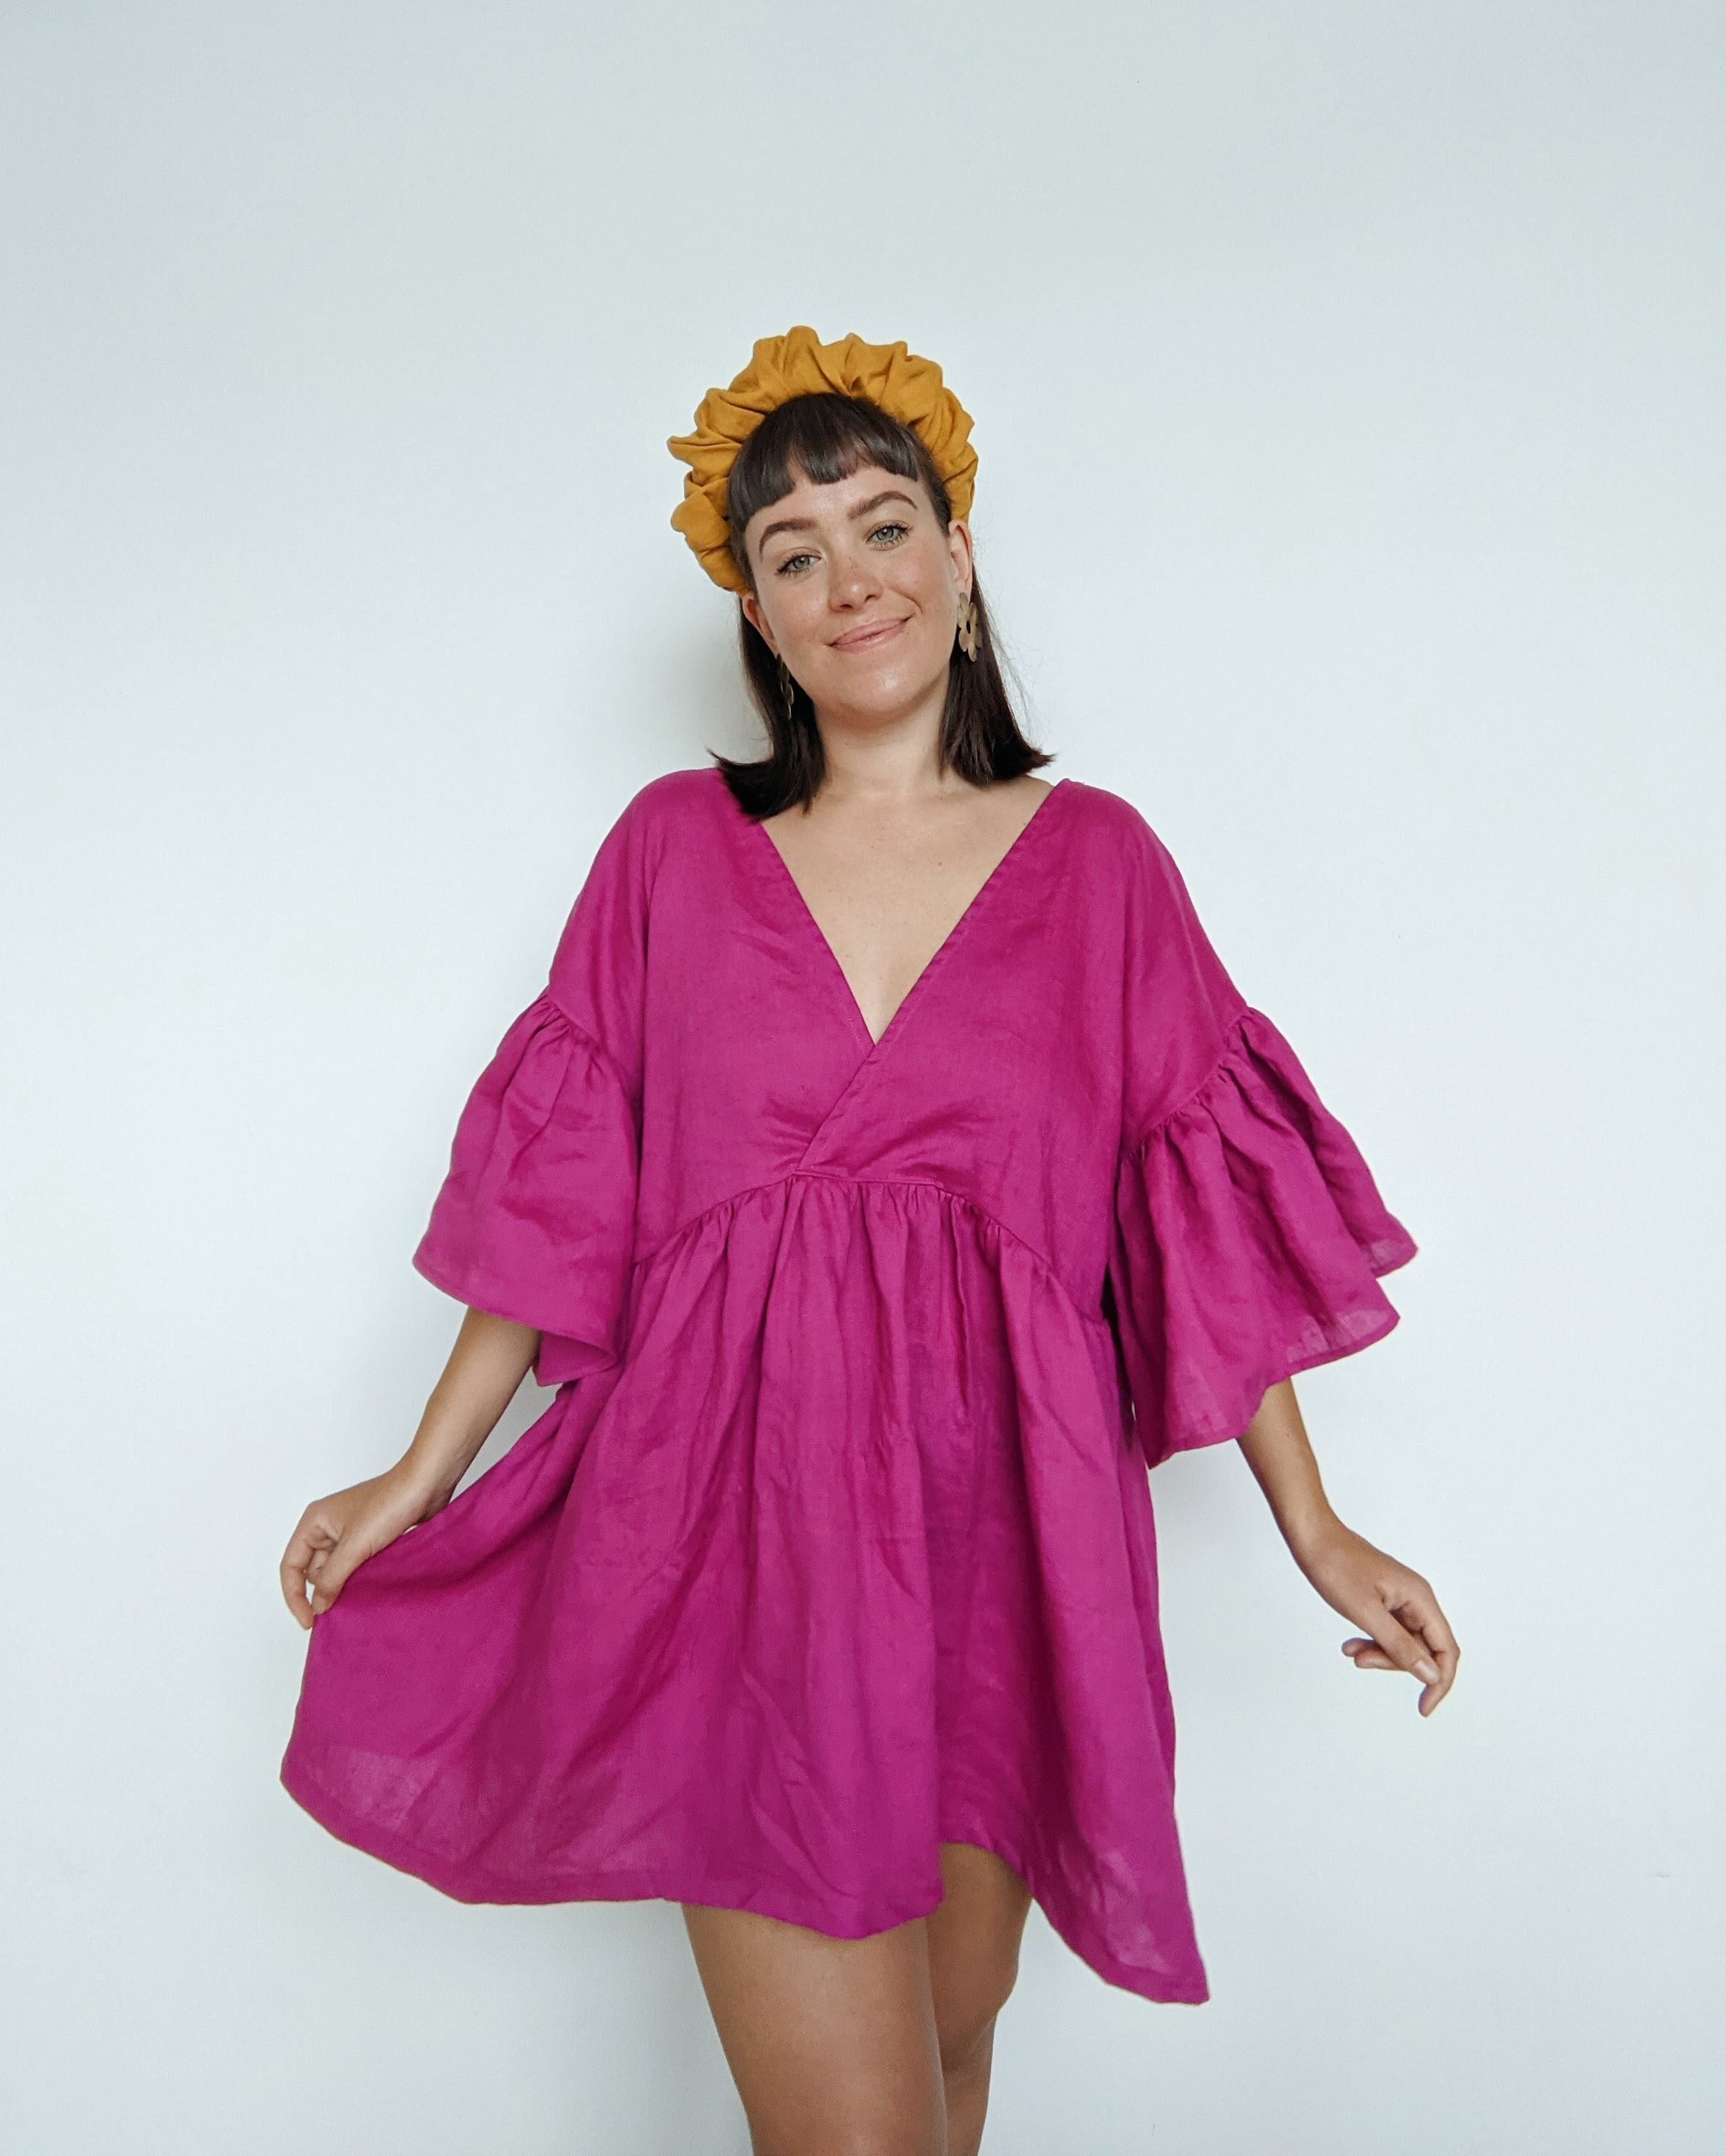 Daisy wears a vibrant, bright pink linen dress with a golden fabric crown headband.  She is holding one side out slightly to show the volume in the Maya ruffle dress skirt.